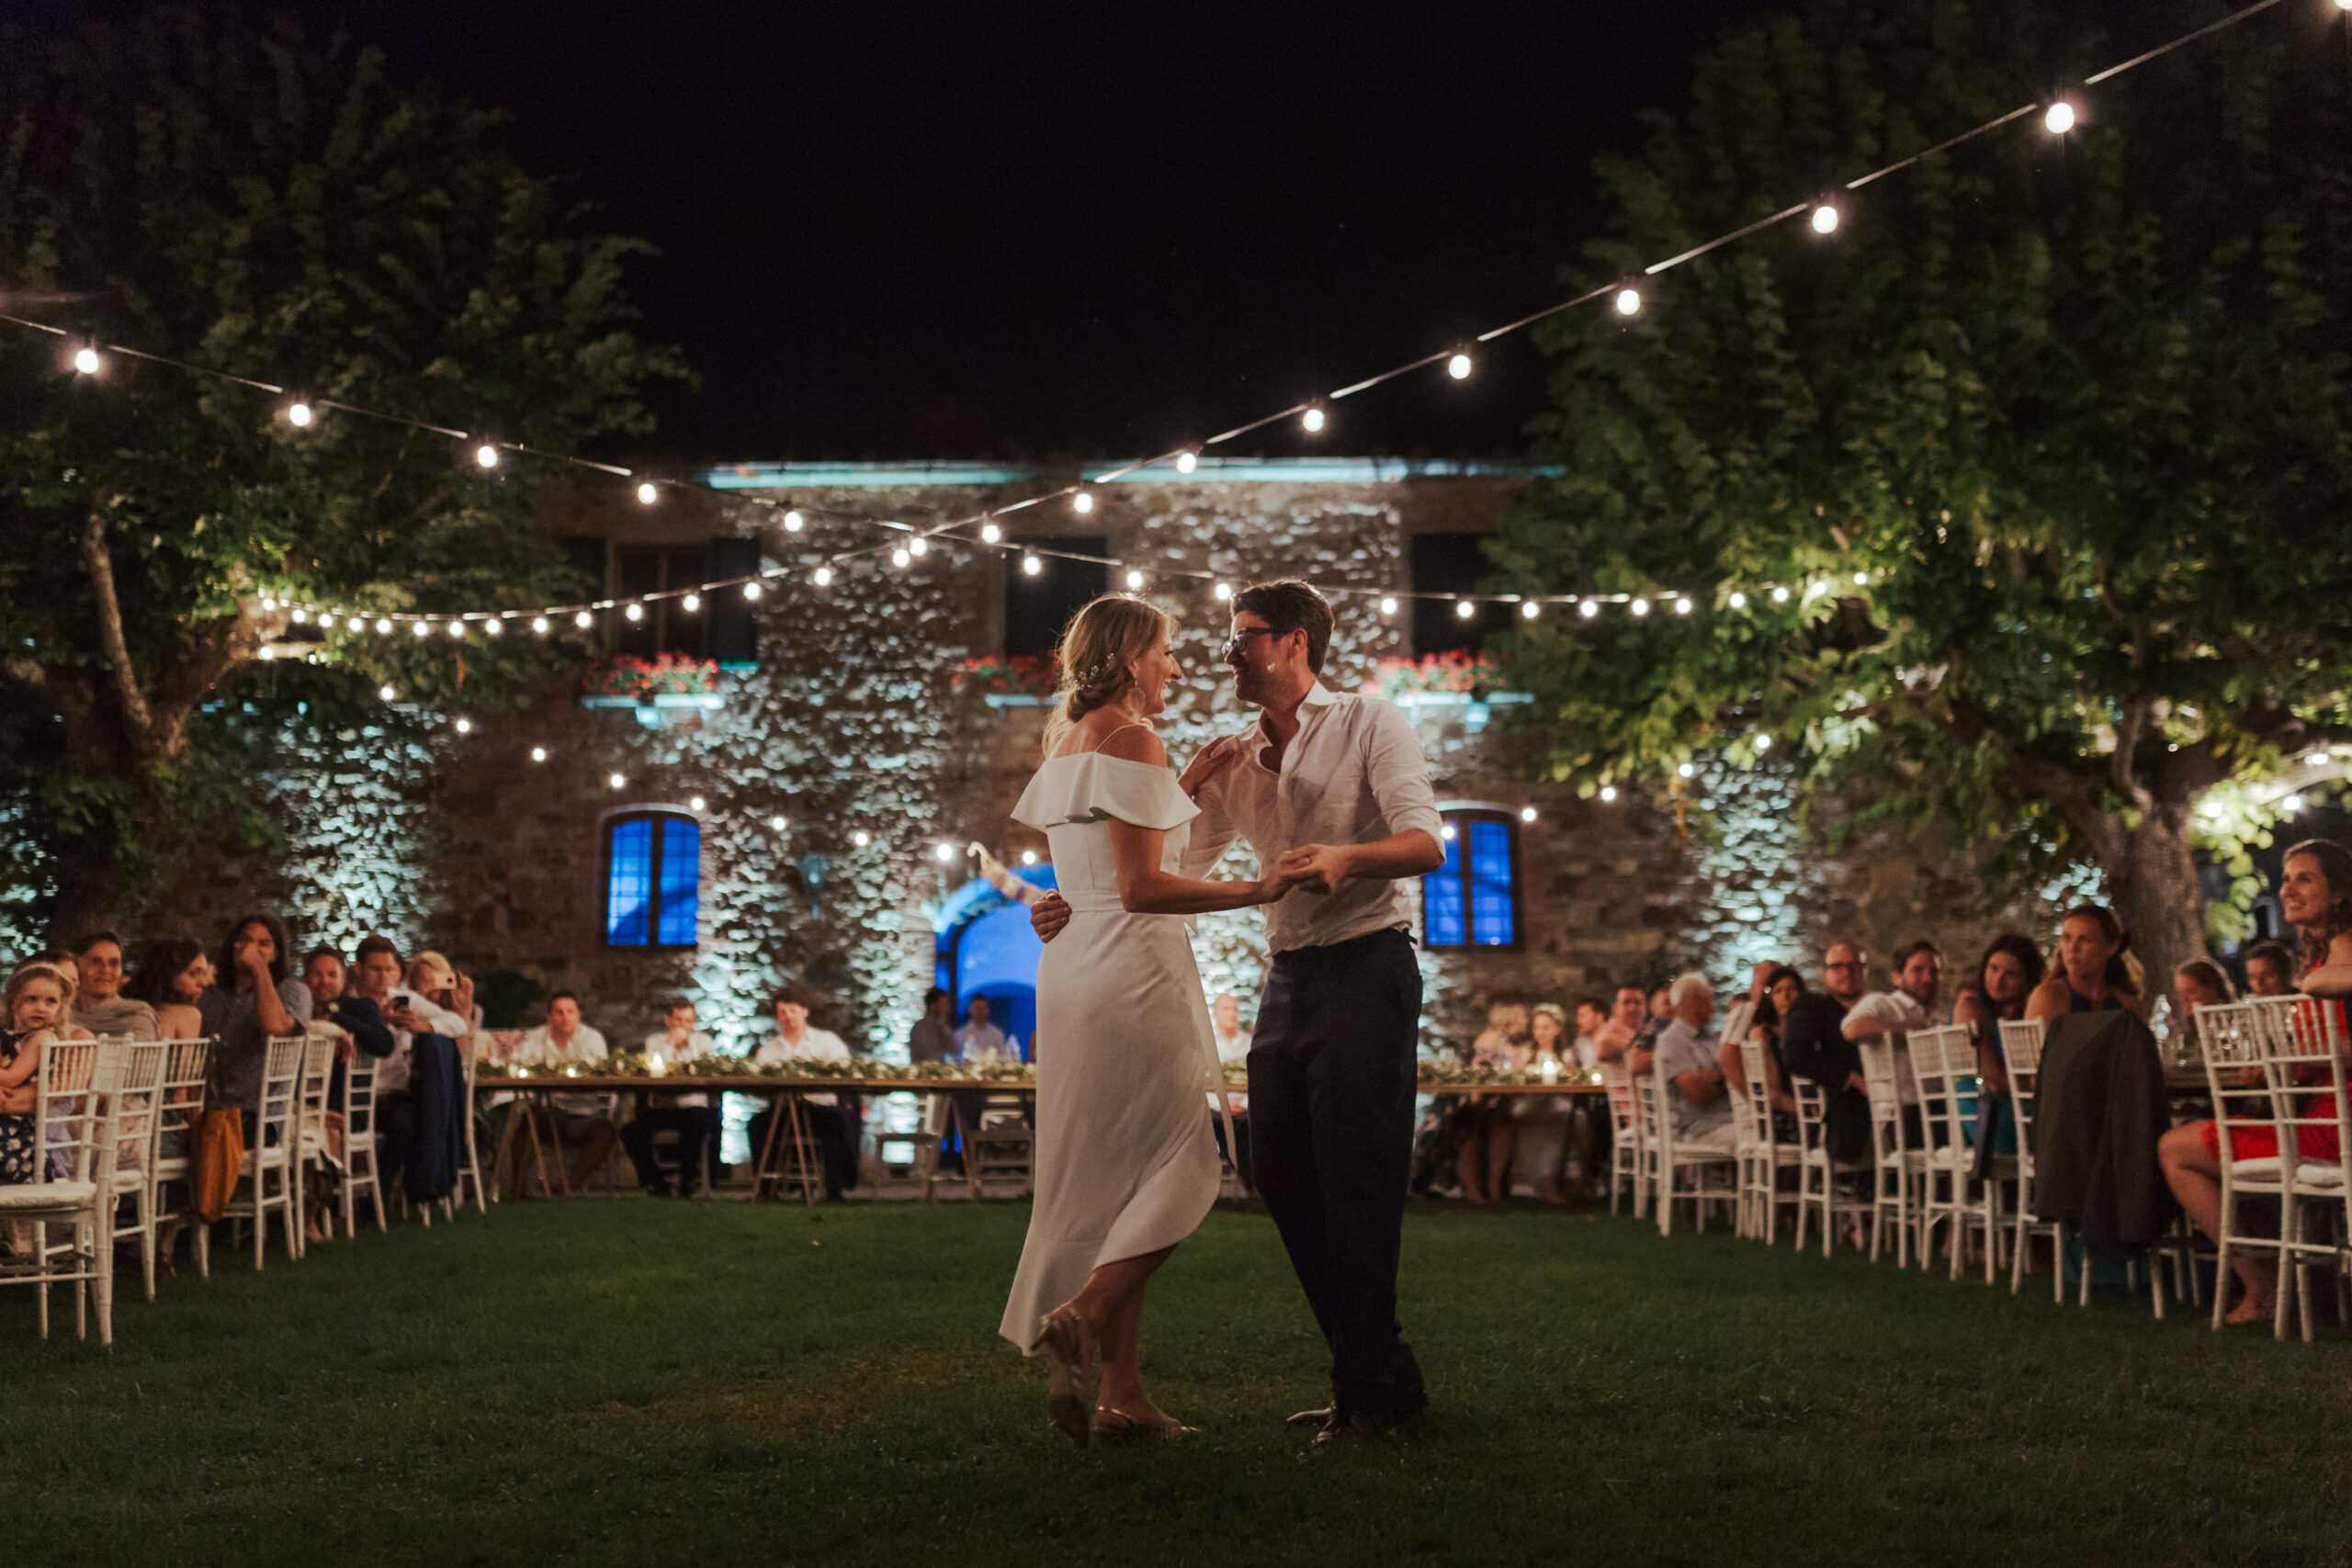 First dance under the Tuscan stars and string lights